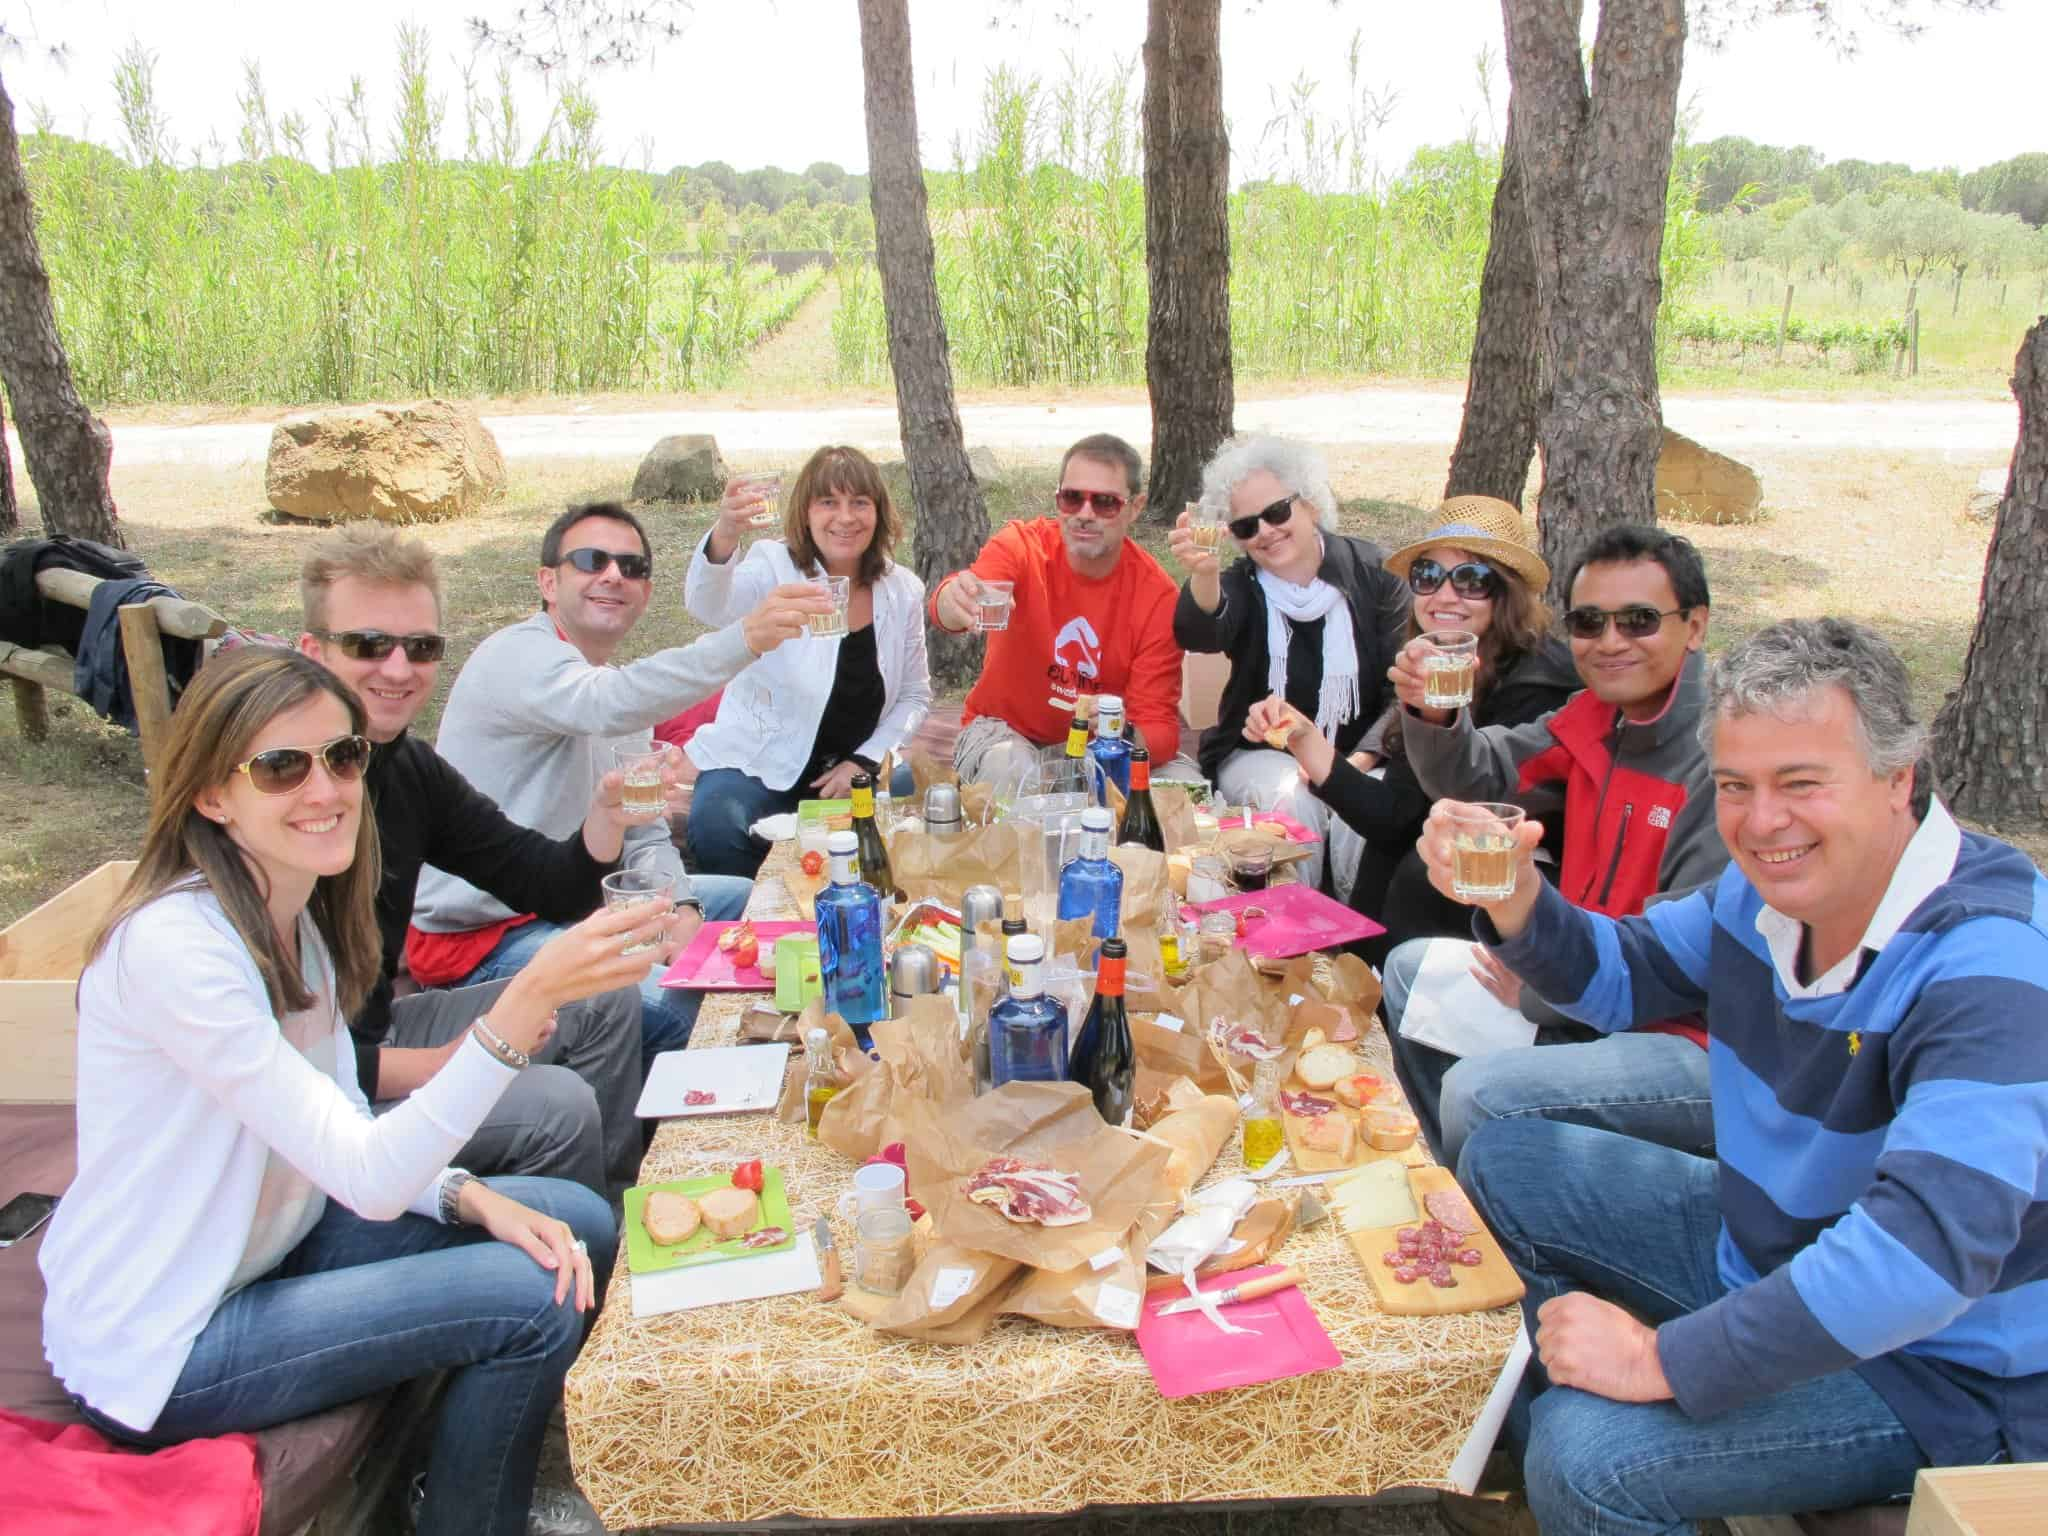 Picnic in a vineyard in Costa Brava.